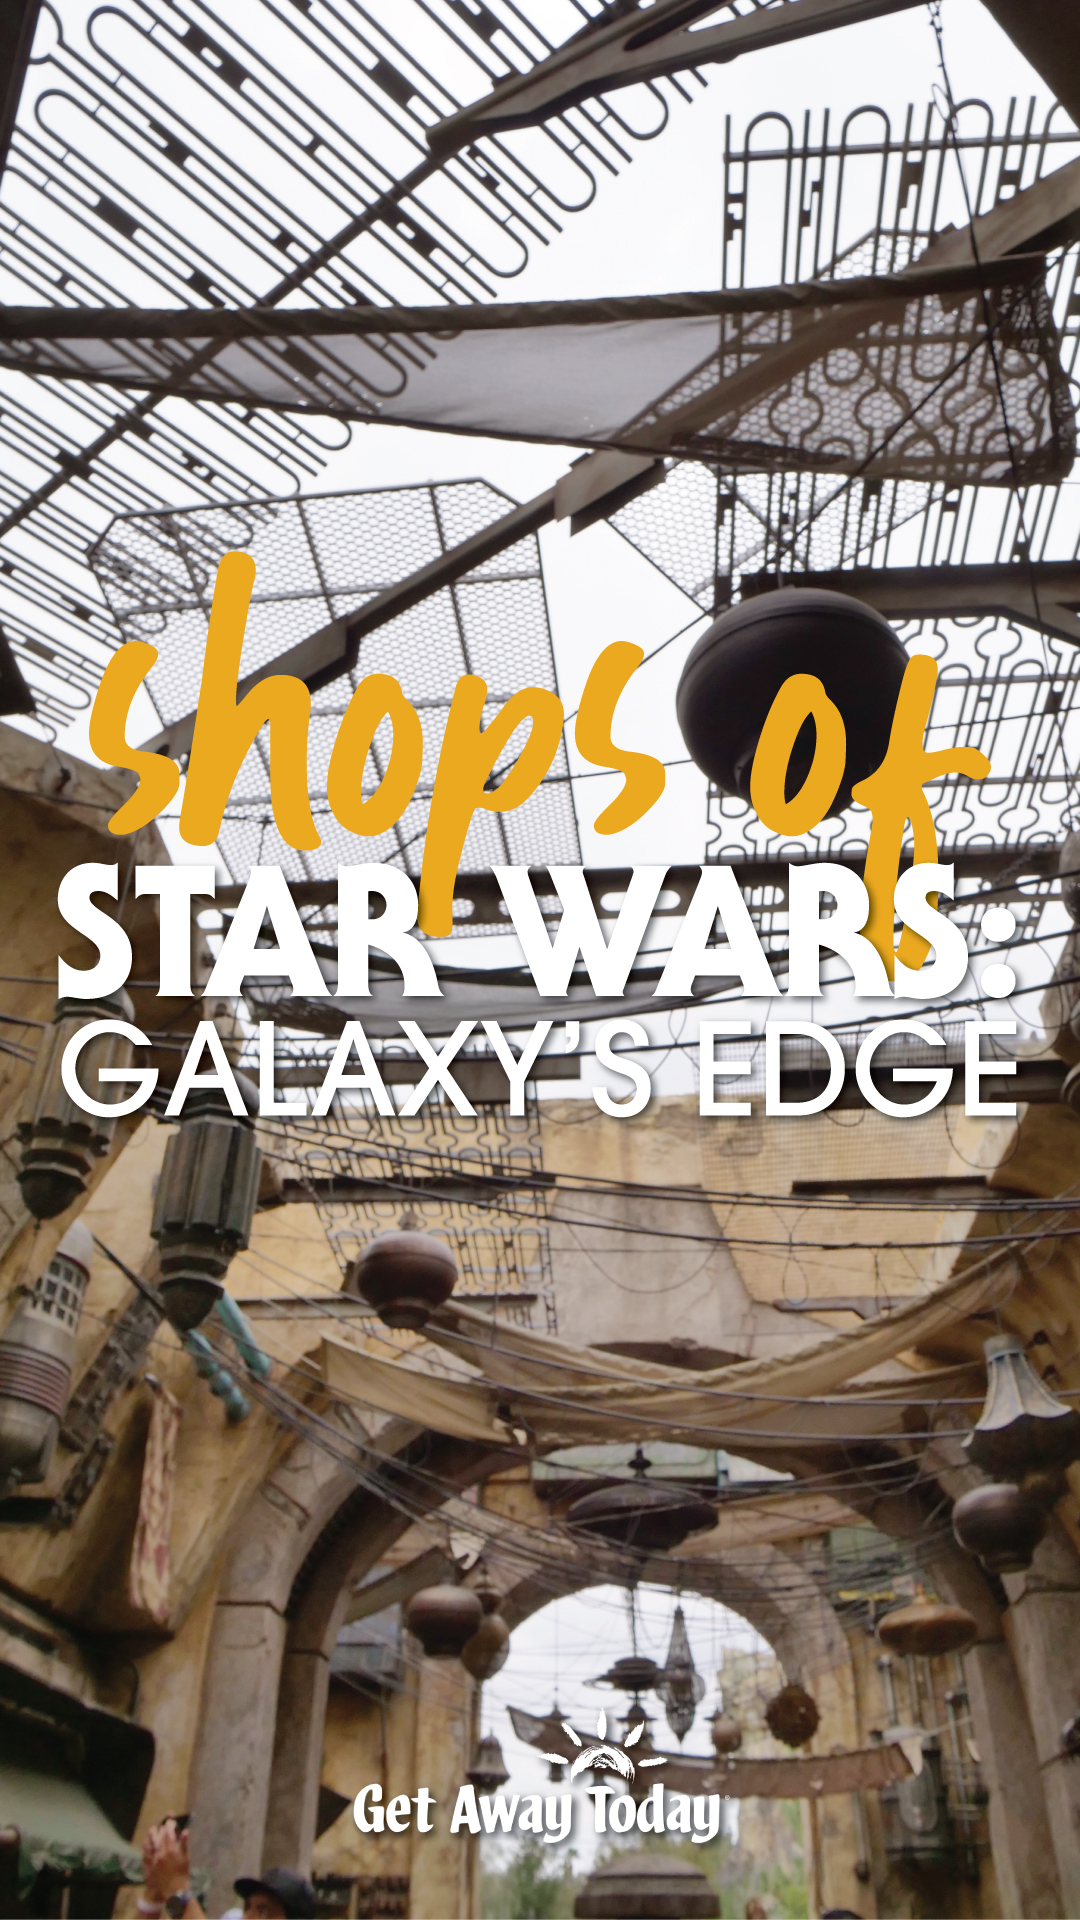 Shops at Star Wars: Galaxy's Edge || Get Away Today